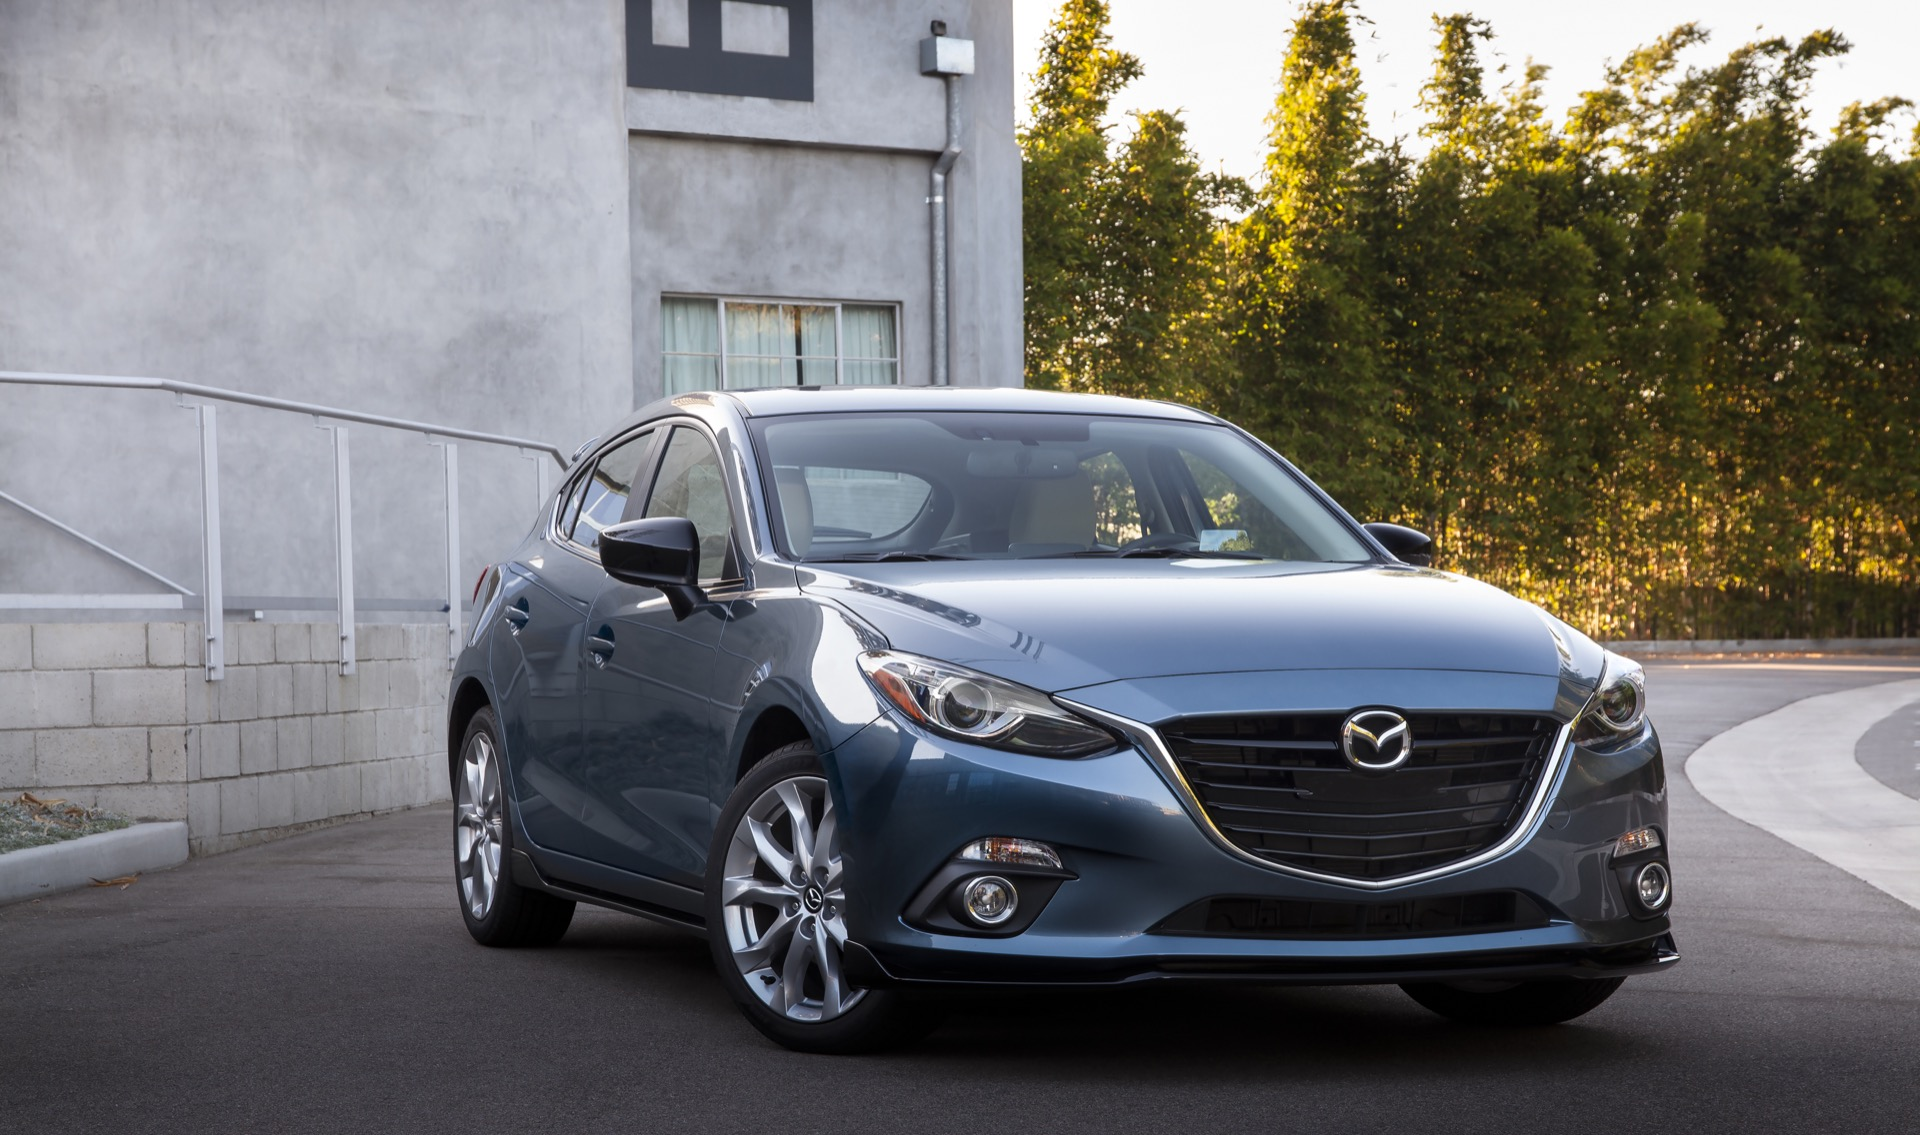 2016 mazda 3 cuts base model adds equipment. Black Bedroom Furniture Sets. Home Design Ideas